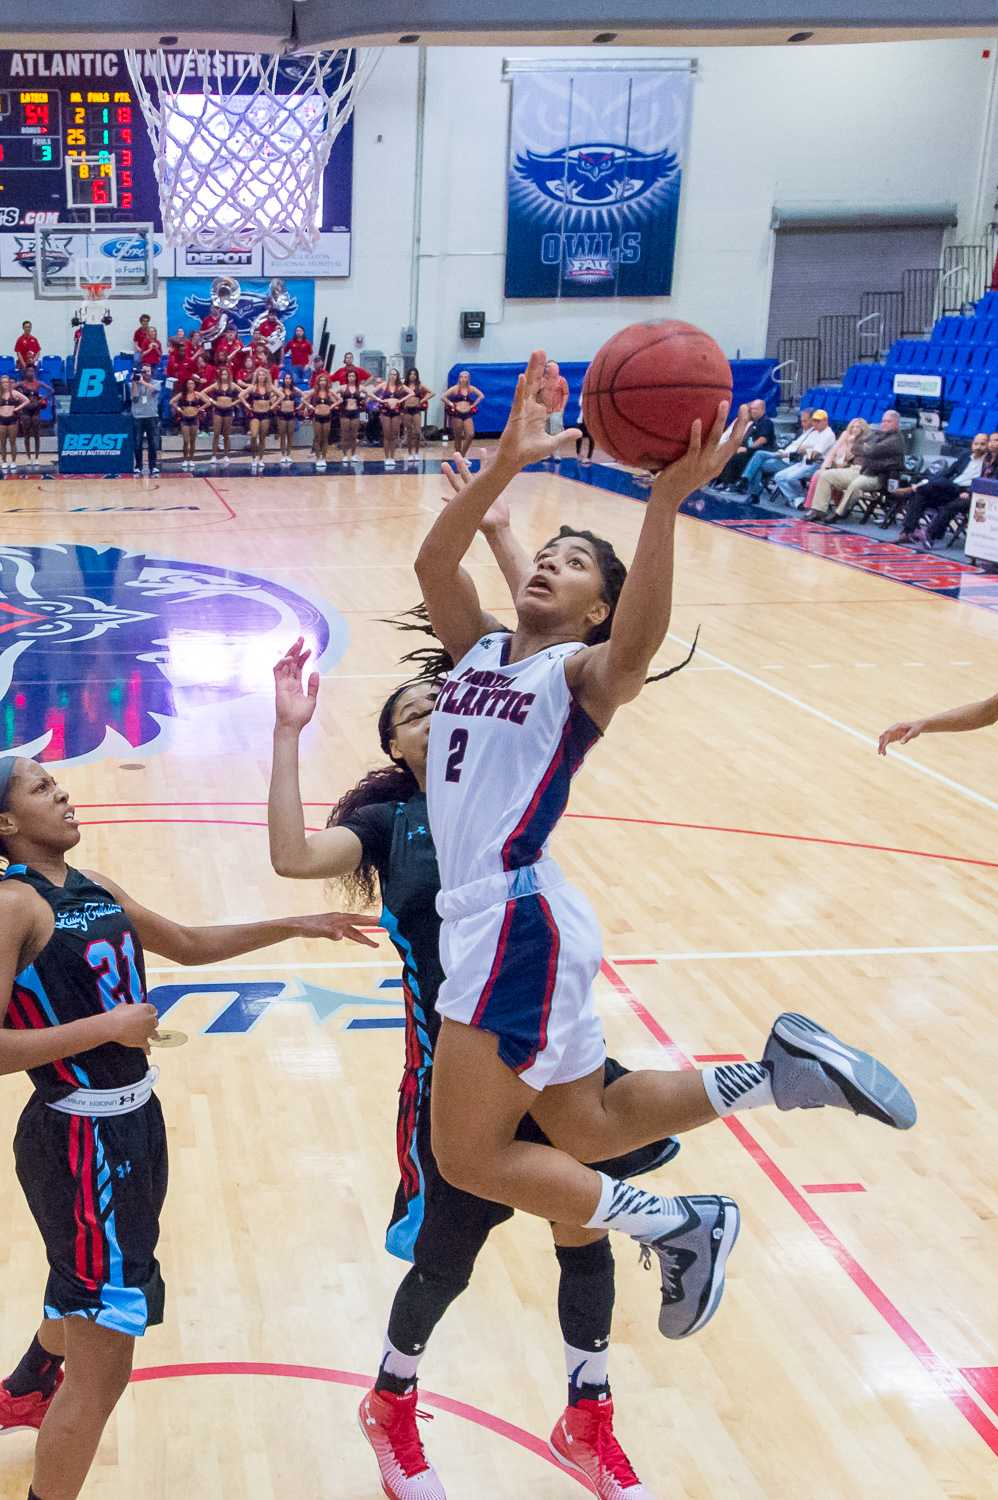 Bailey (2) goes up for a jumpshot in the second half against the Lady Techsters.